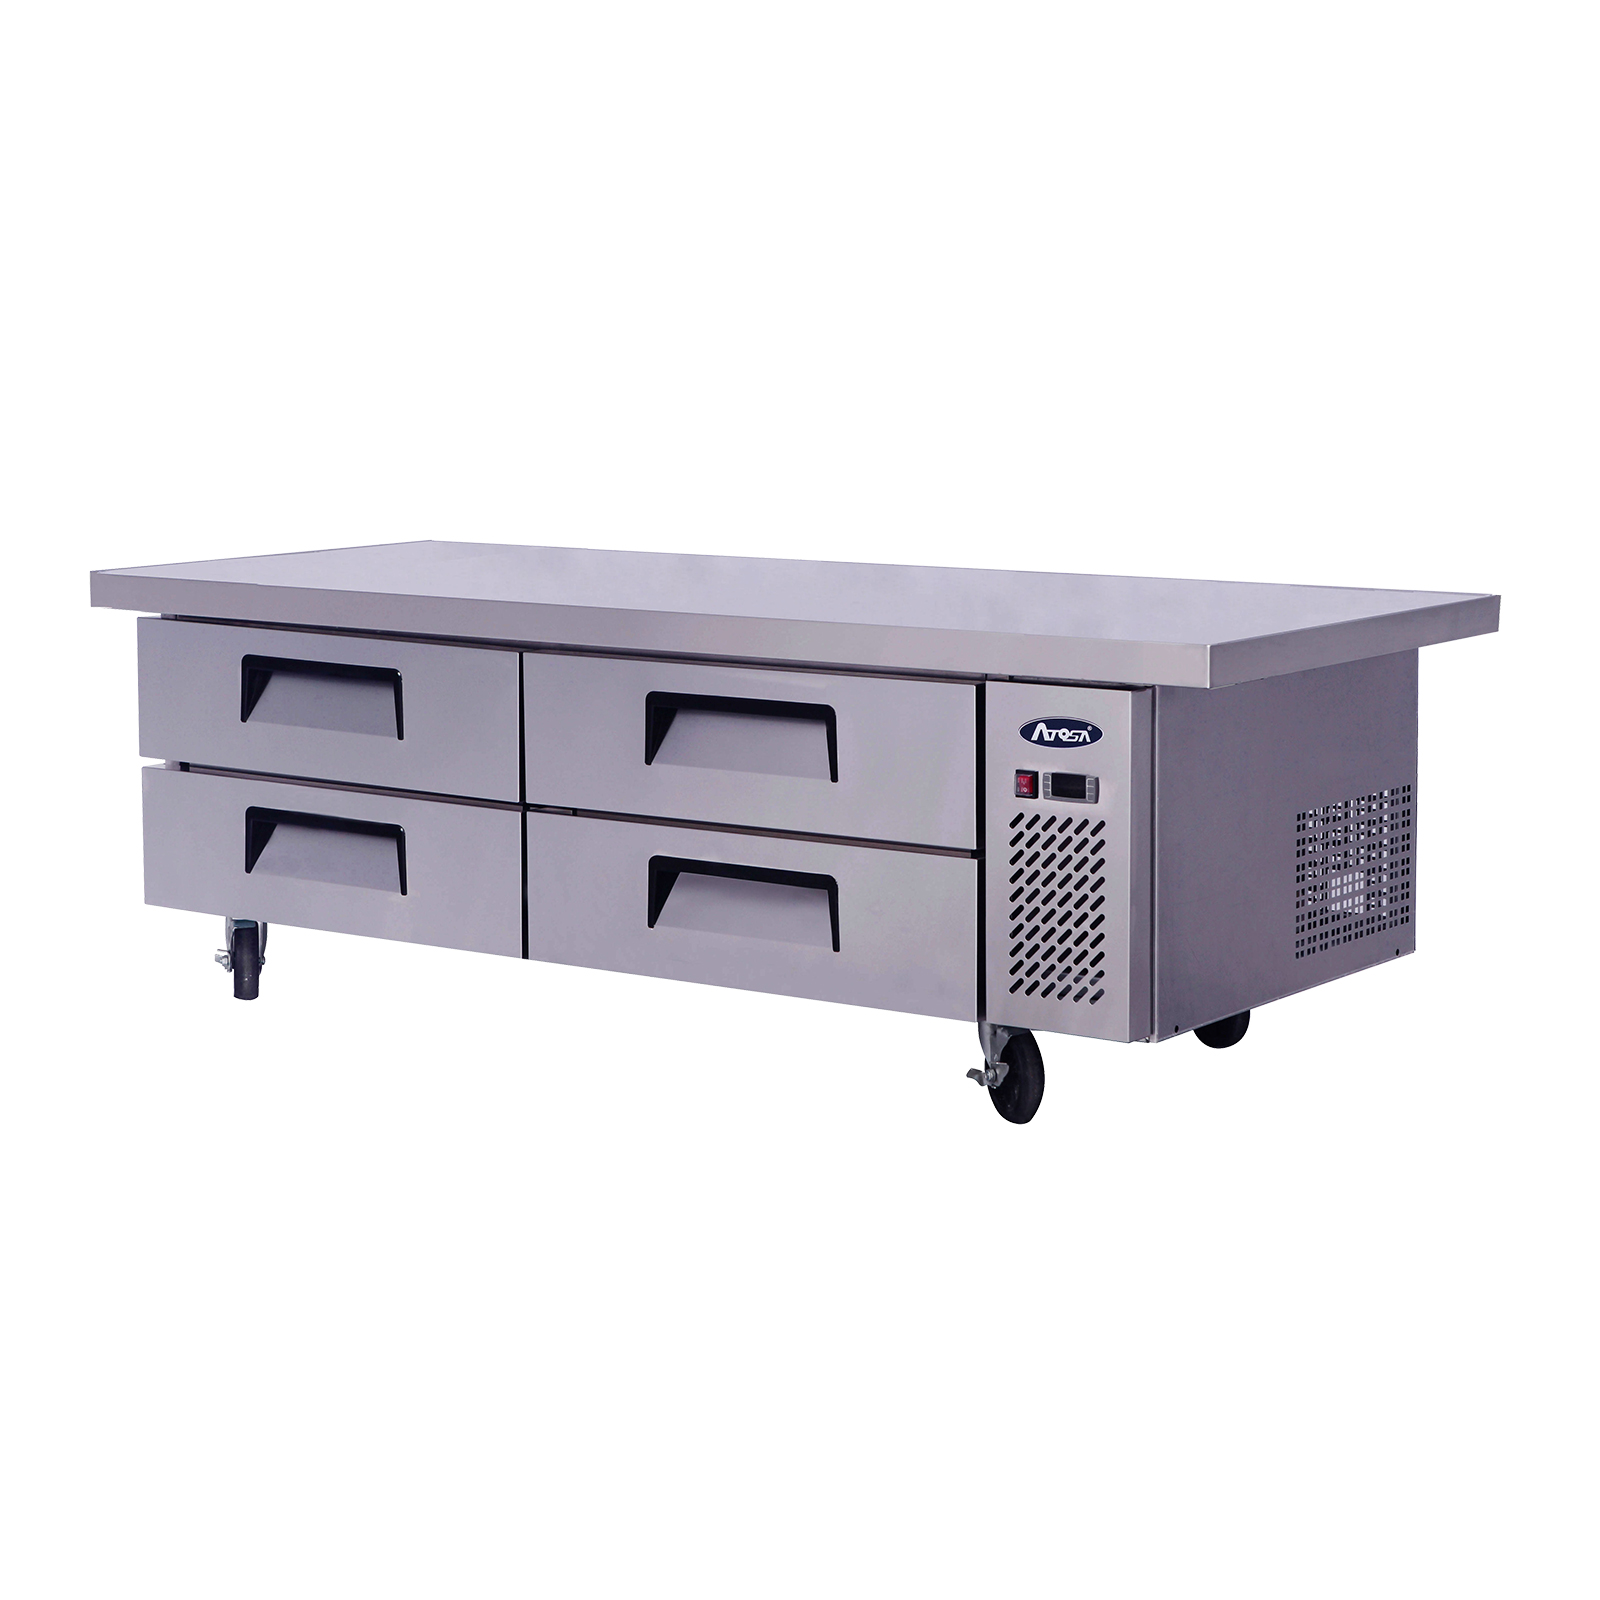 Atosa USA MGF8454GR equipment stand, refrigerated base